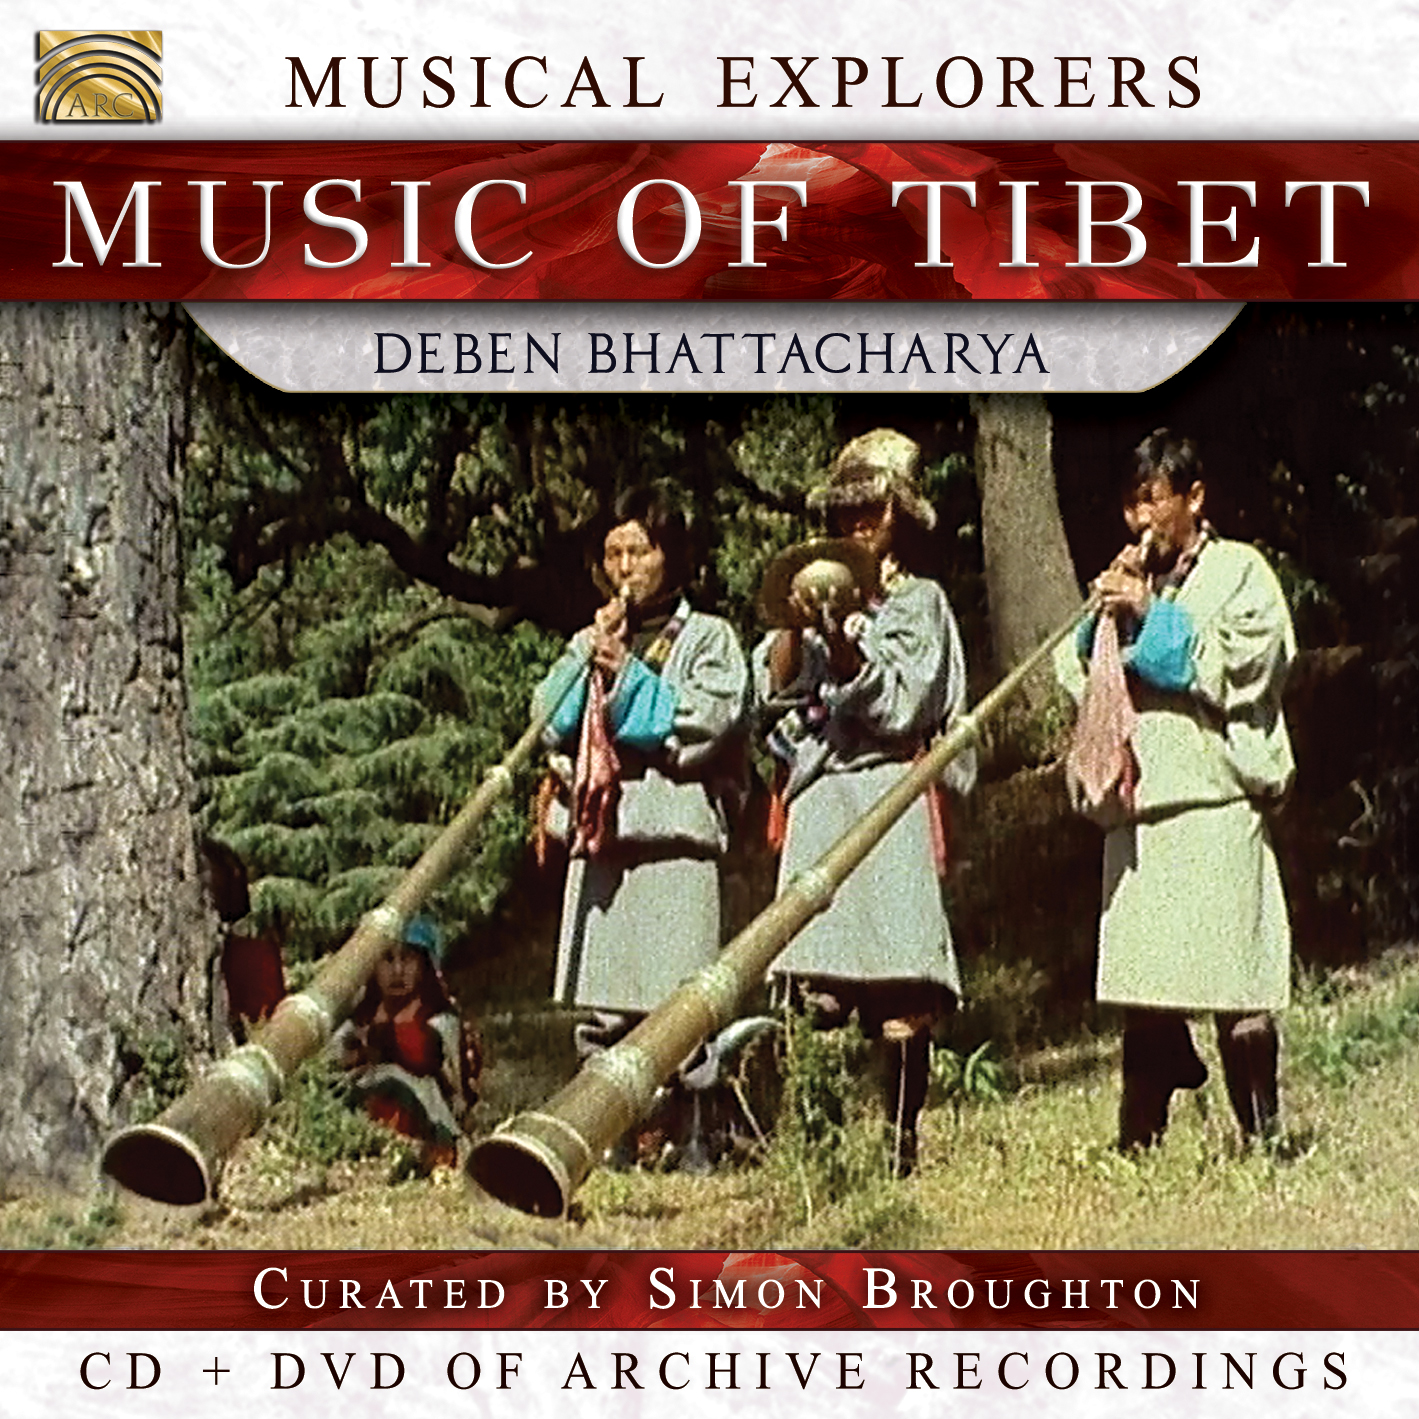 EUCD2758 Musical Explorers - Music of Tibet